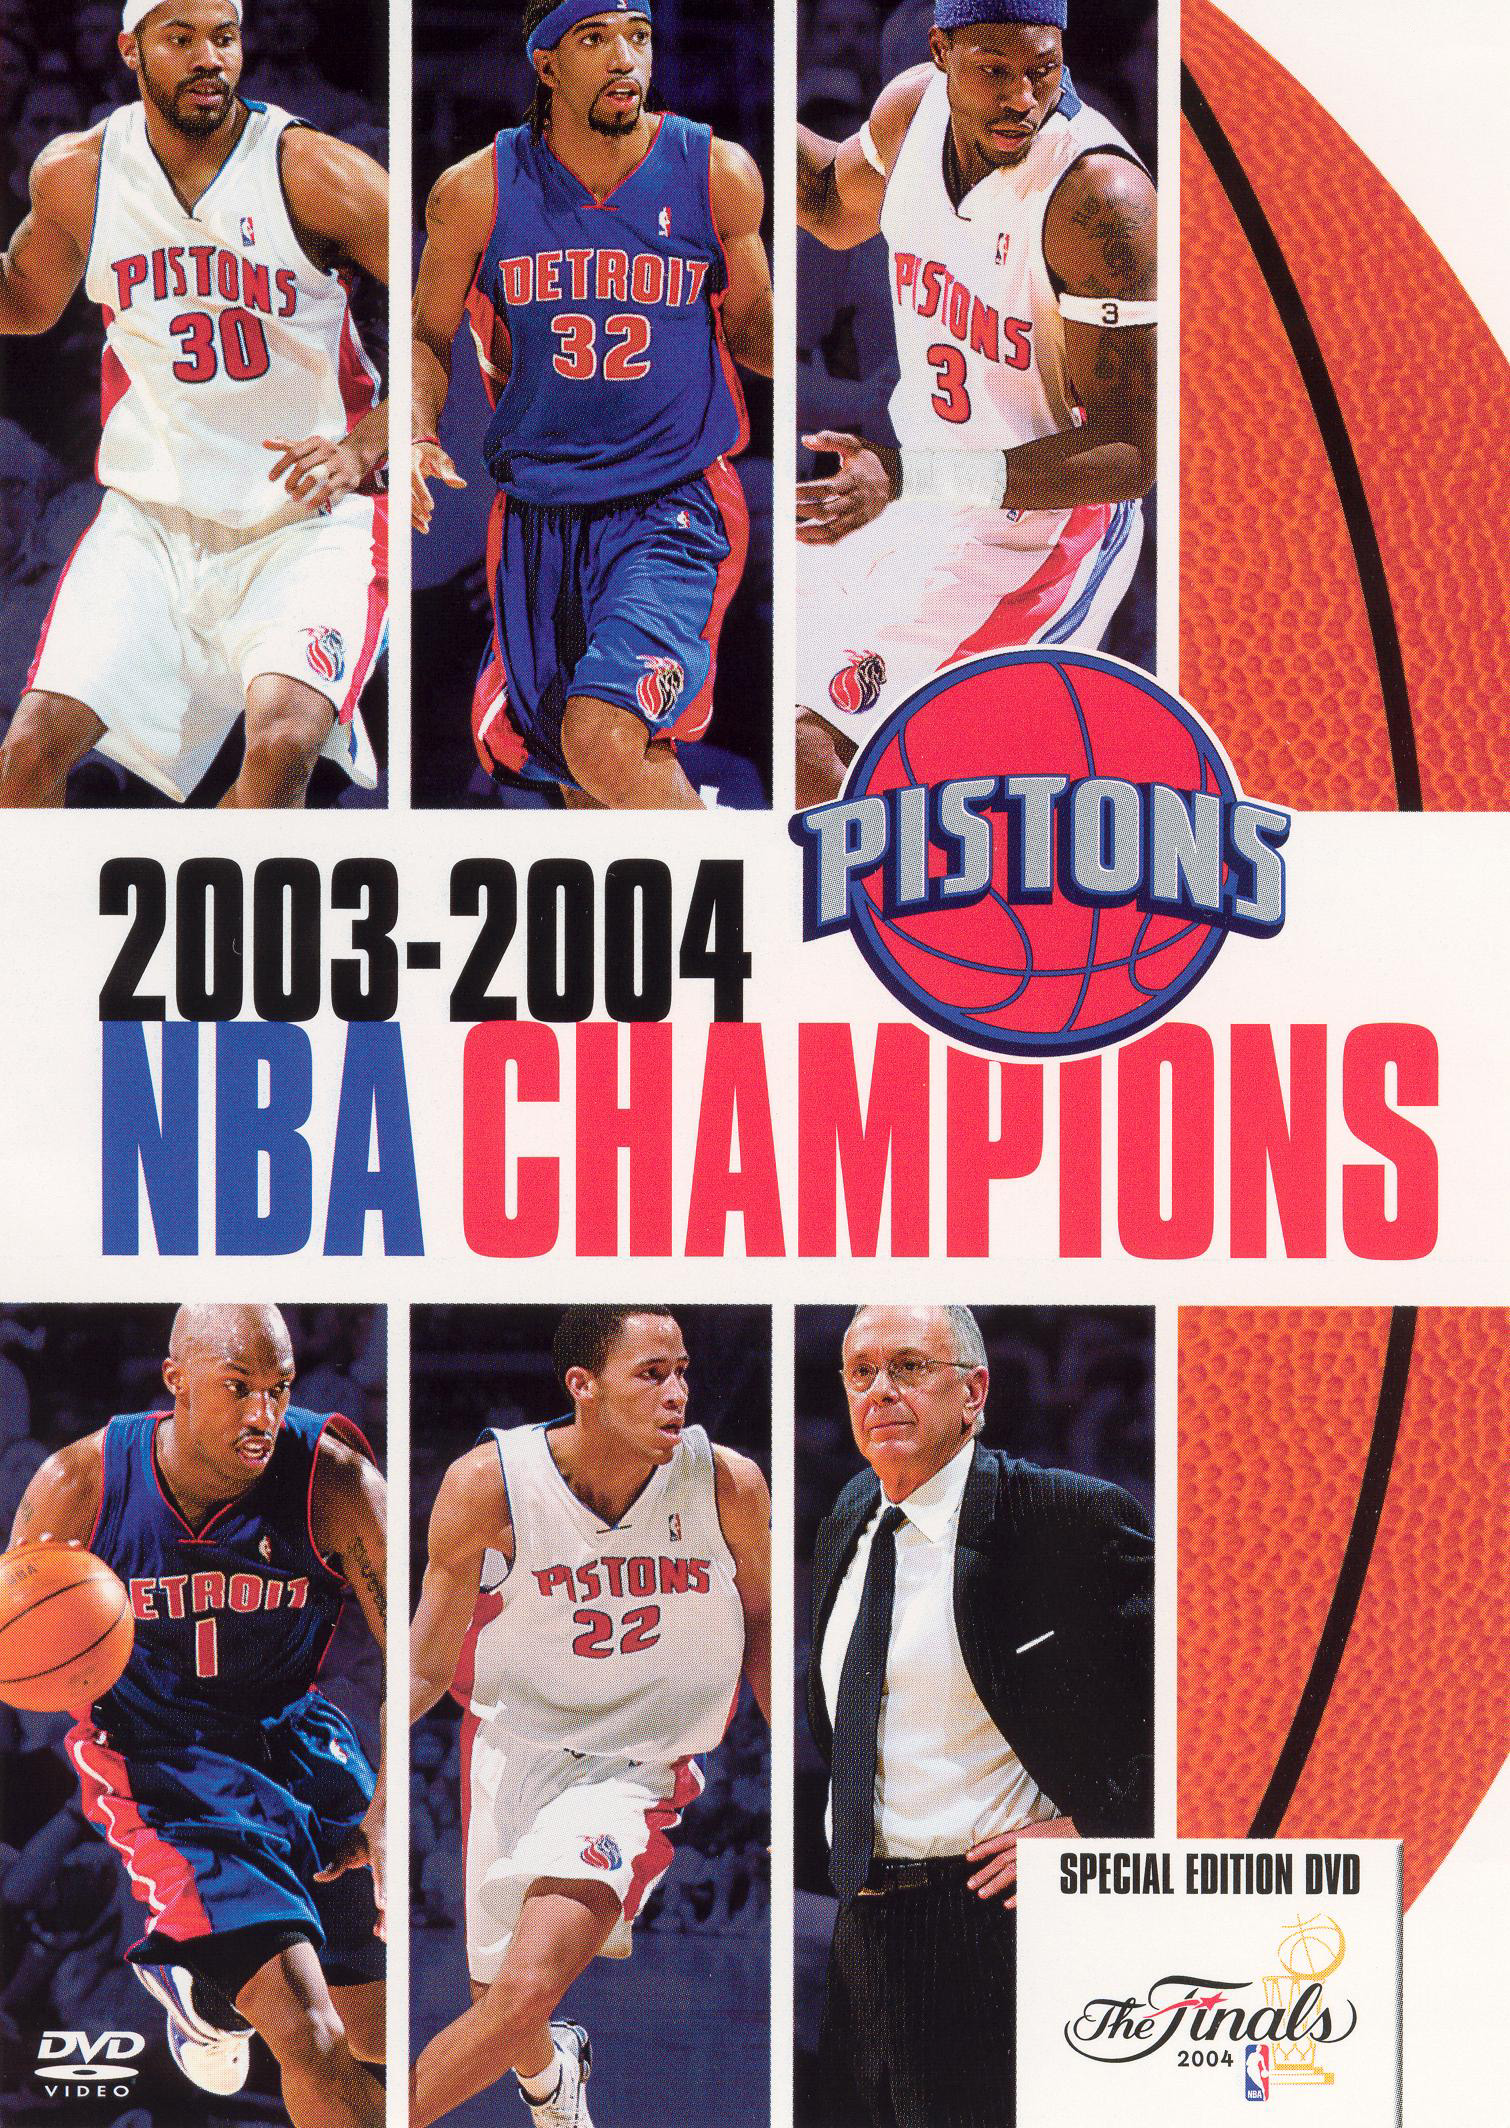 The Official 2004 NBA Championship: Detroit Pistons